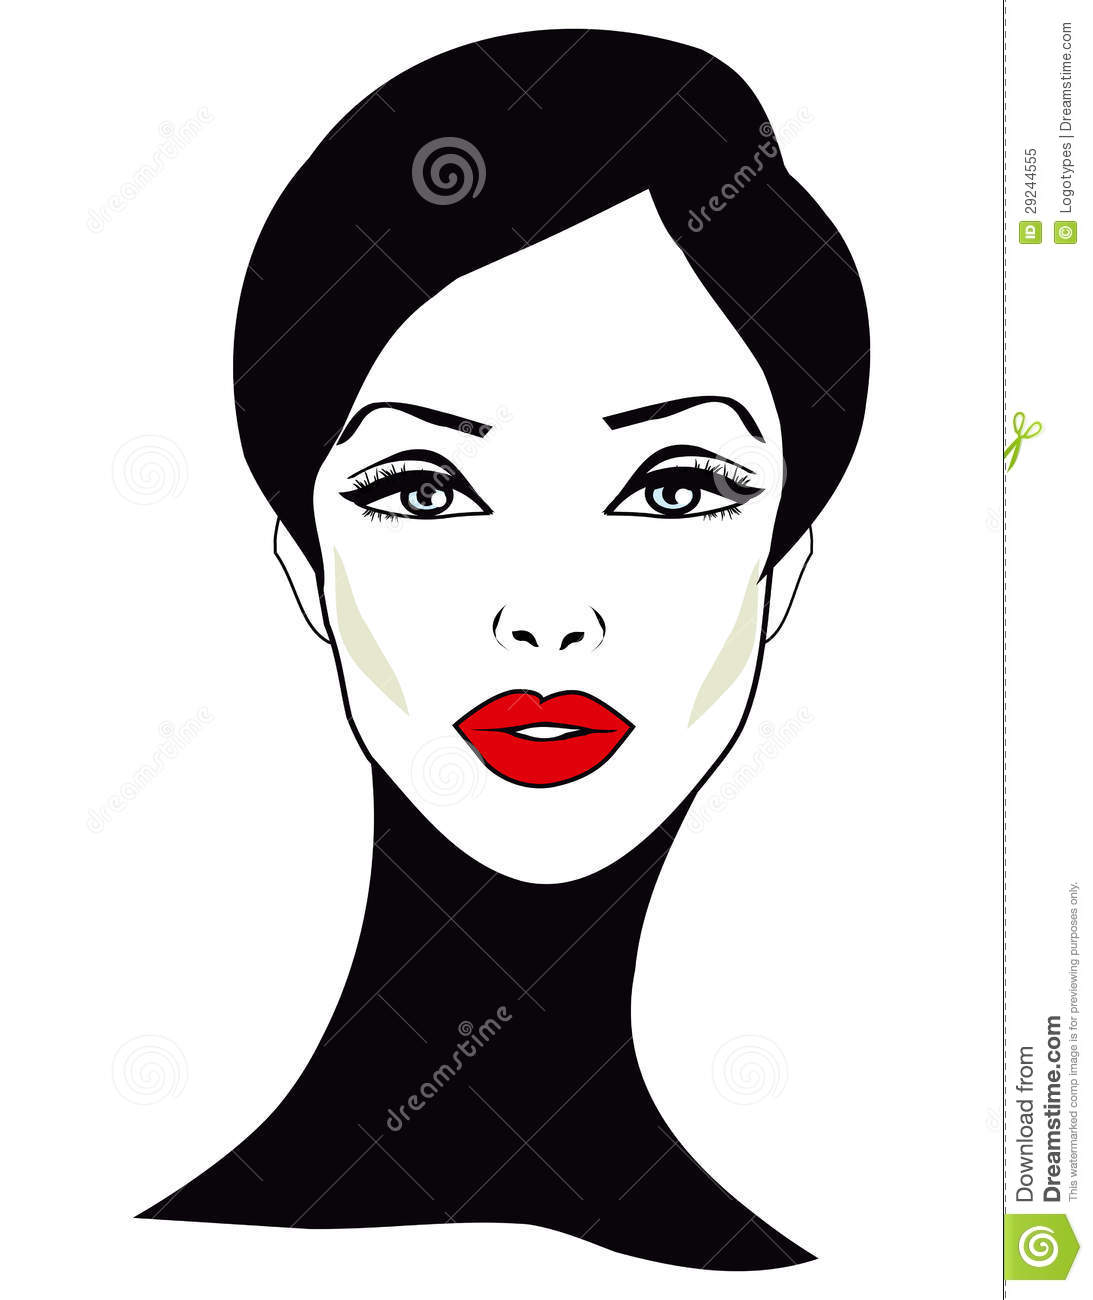 Woman face clipart black and white stock woman face clipart woman face | Clipart Panda - Free Clipart ... black and white stock